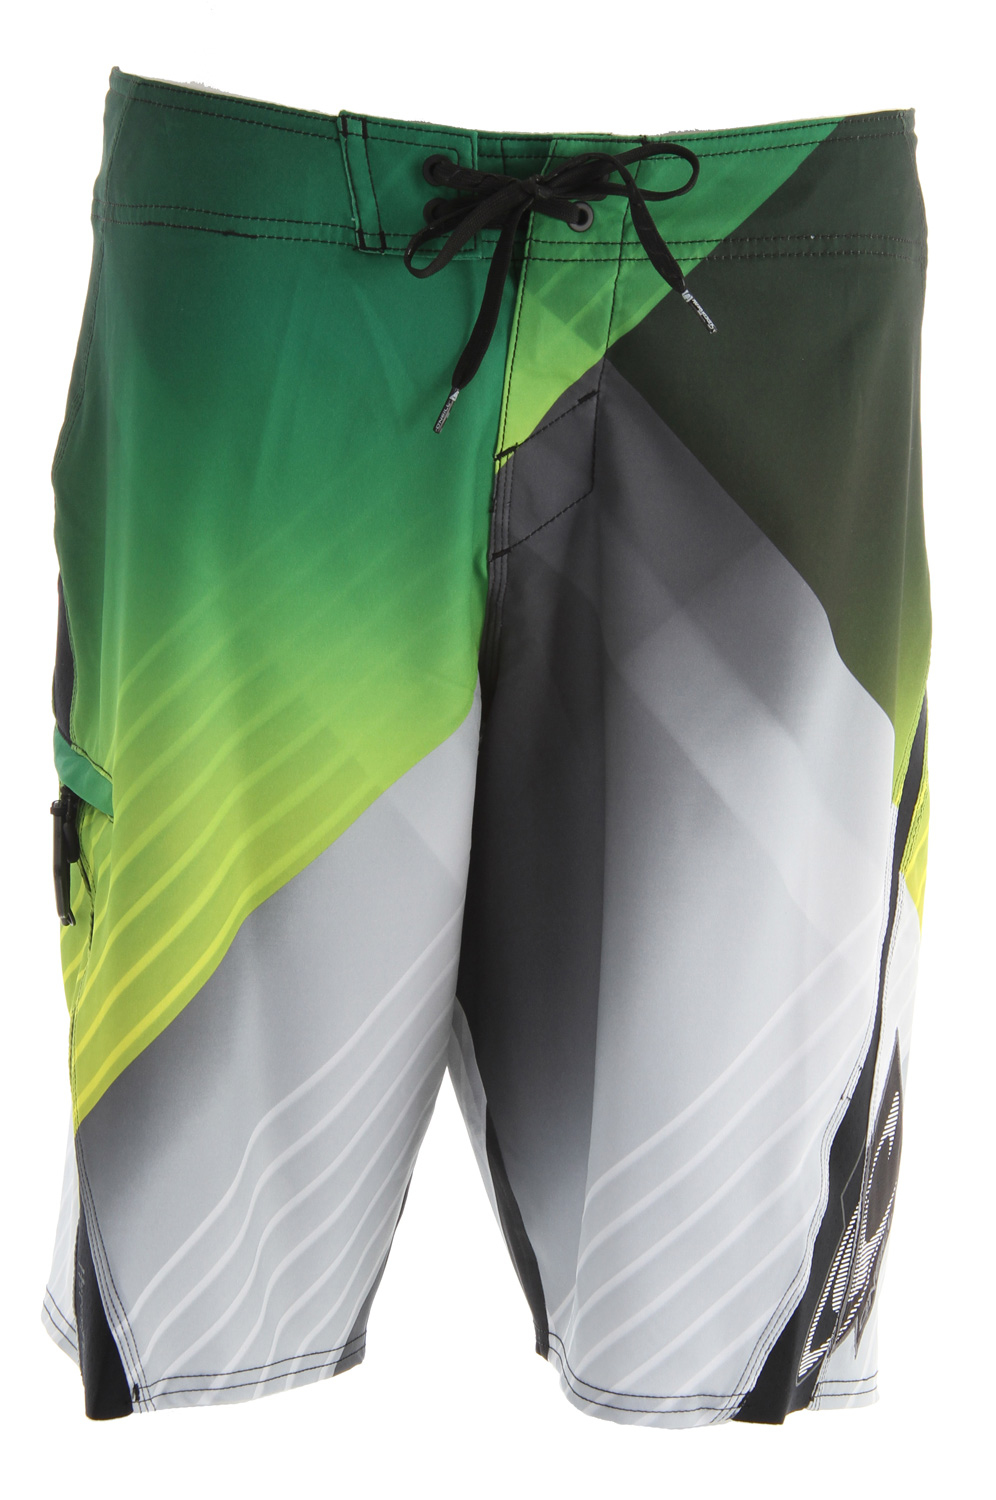 "Surf Key Features of the O'Neill Lopez Freak Boardshorts: New psychostretch 21"" ousteam Engineered printed boardshort Hyperprene stretch panels Superfly 2.0 closure Locking drawcord Welt zip pocket Embroidered, appliqued and screened logos - $62.00"